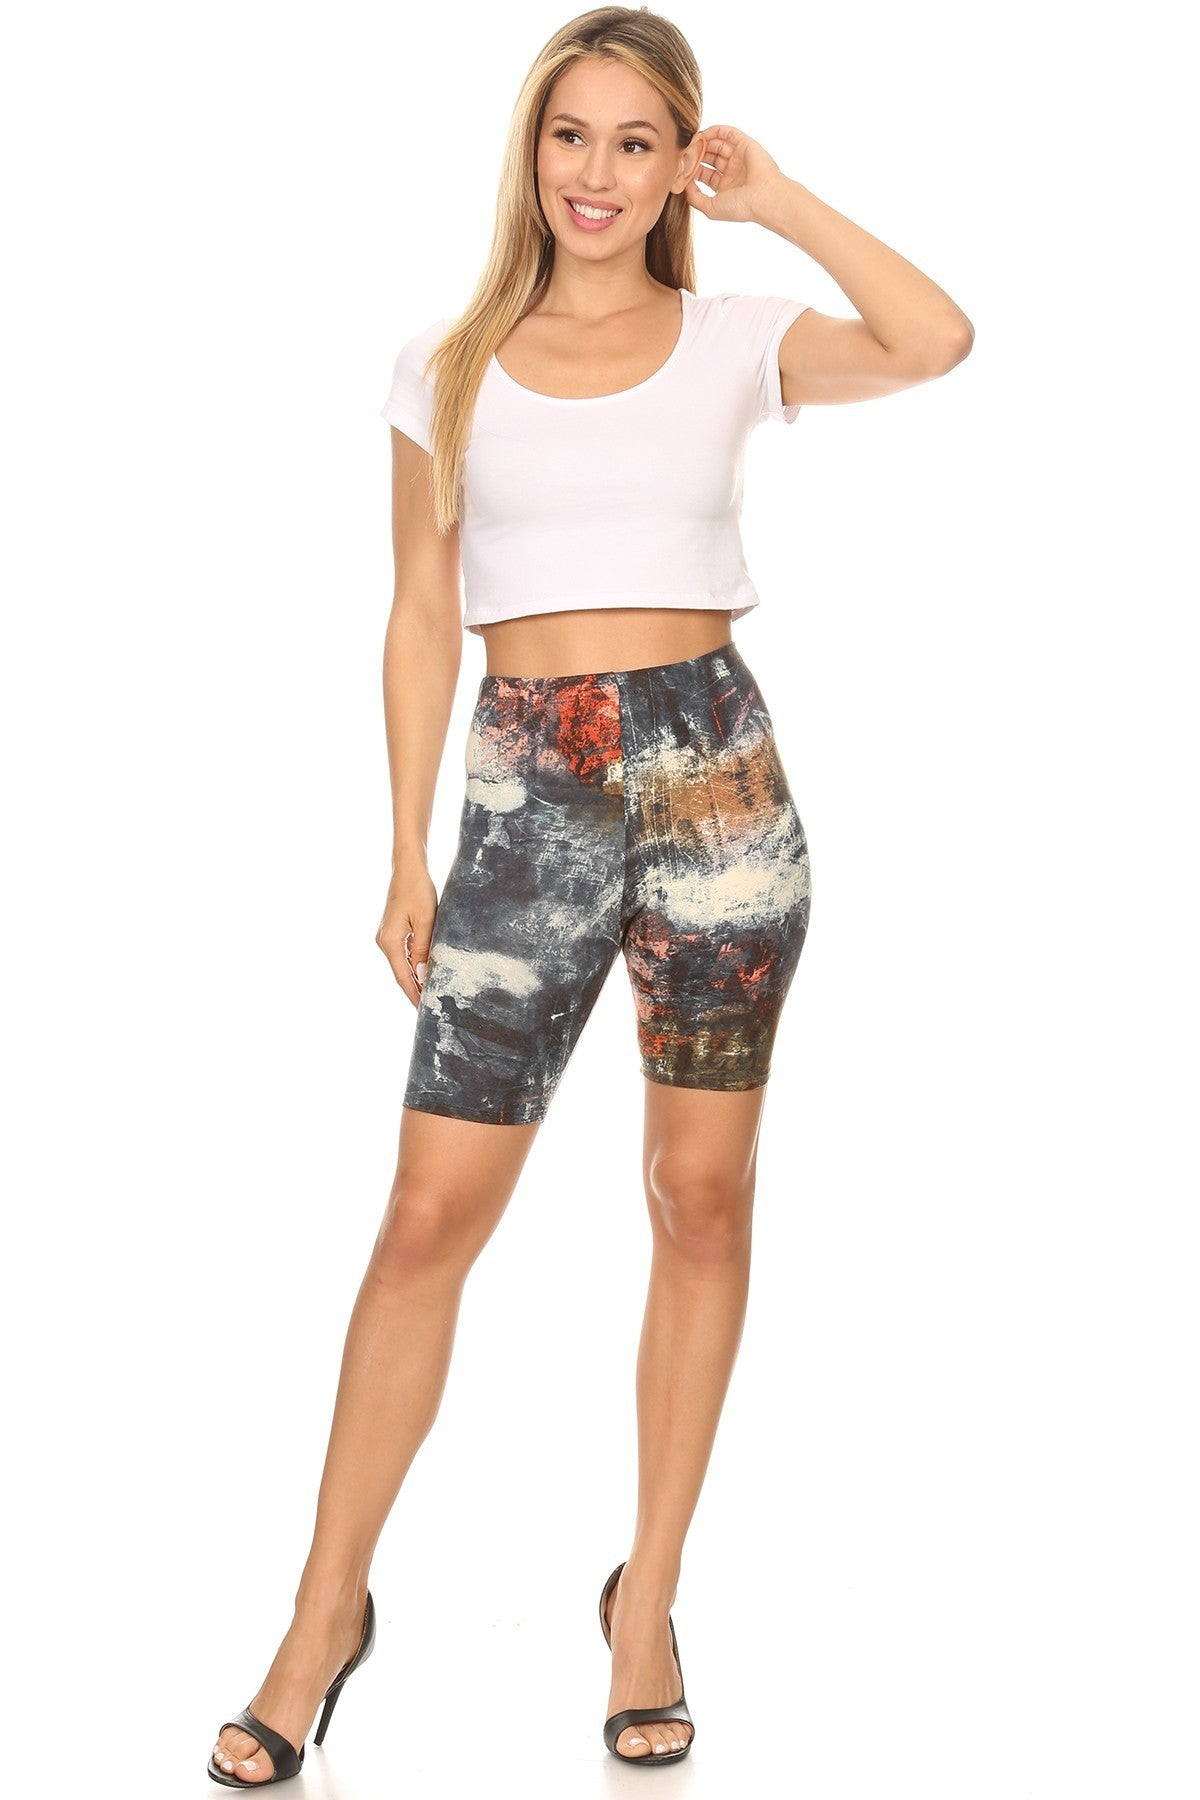 Tie Dye Biker Shorts black High Elastic Waist- Your Style Clothing